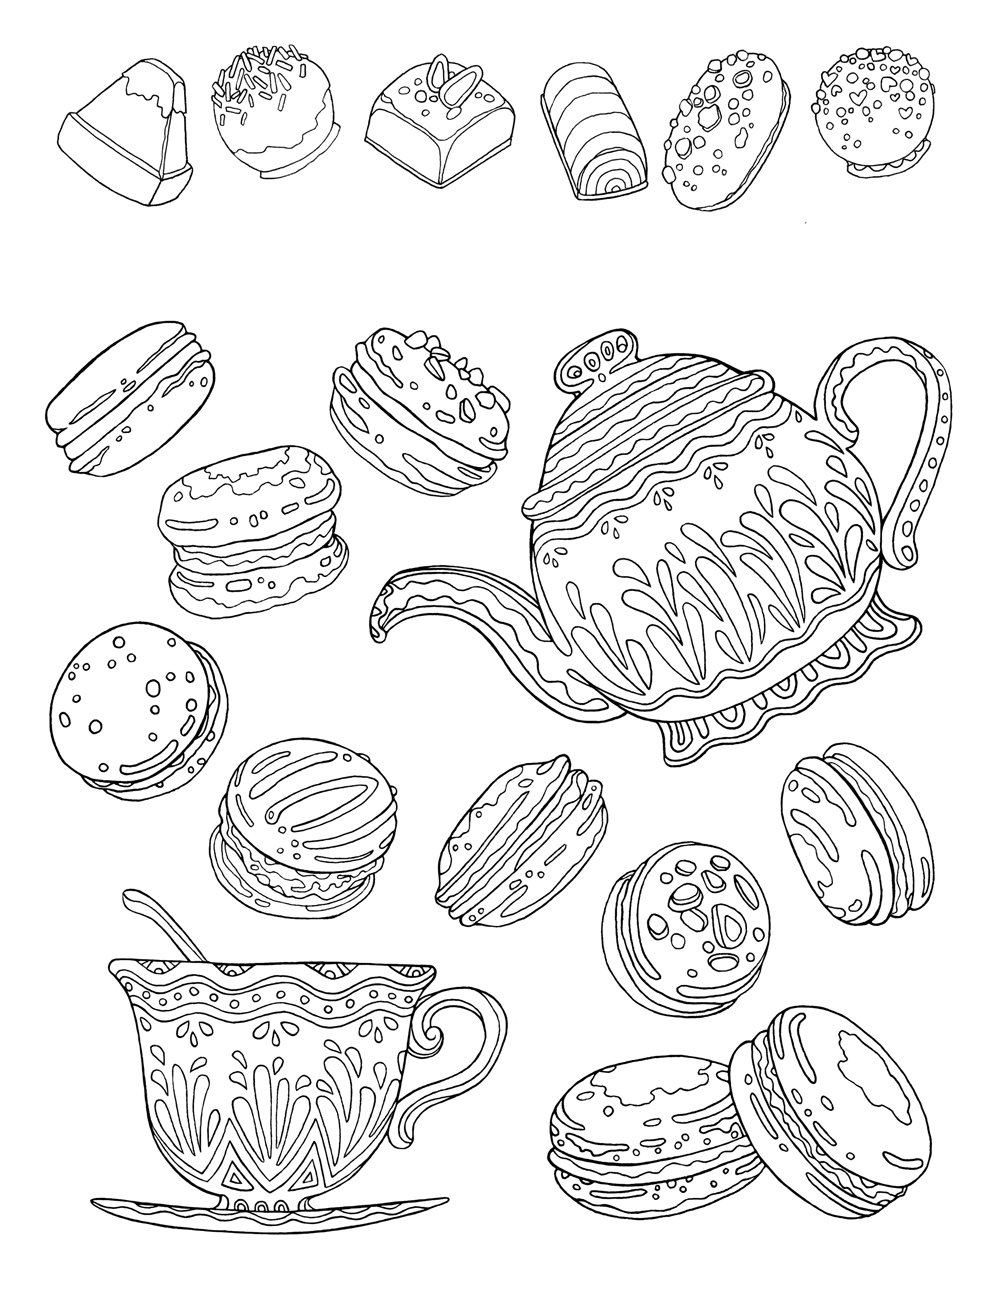 Free printable coloring page for adults, hand drawn 'tea time' illustration. Macarons, tea pot and cup with doodle patterns for coloring.